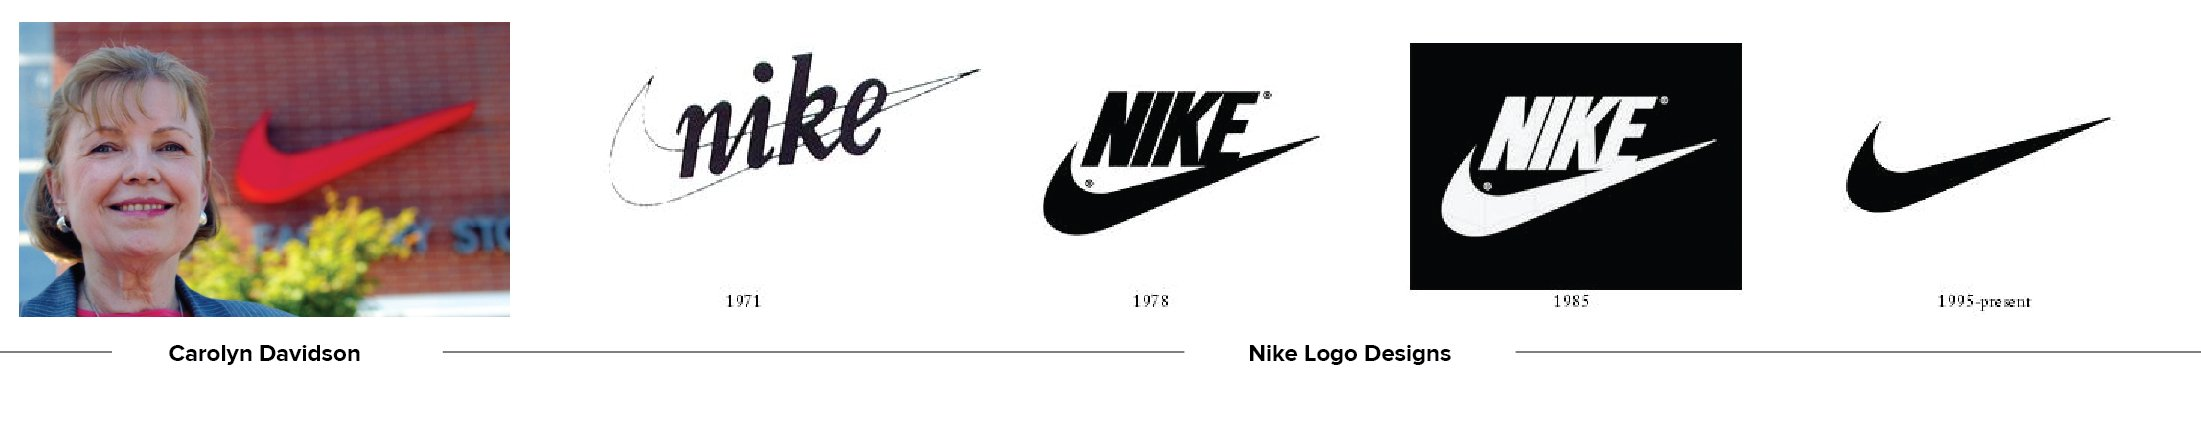 Nike Air Max shoe logo sparks outrage for Allahlike design